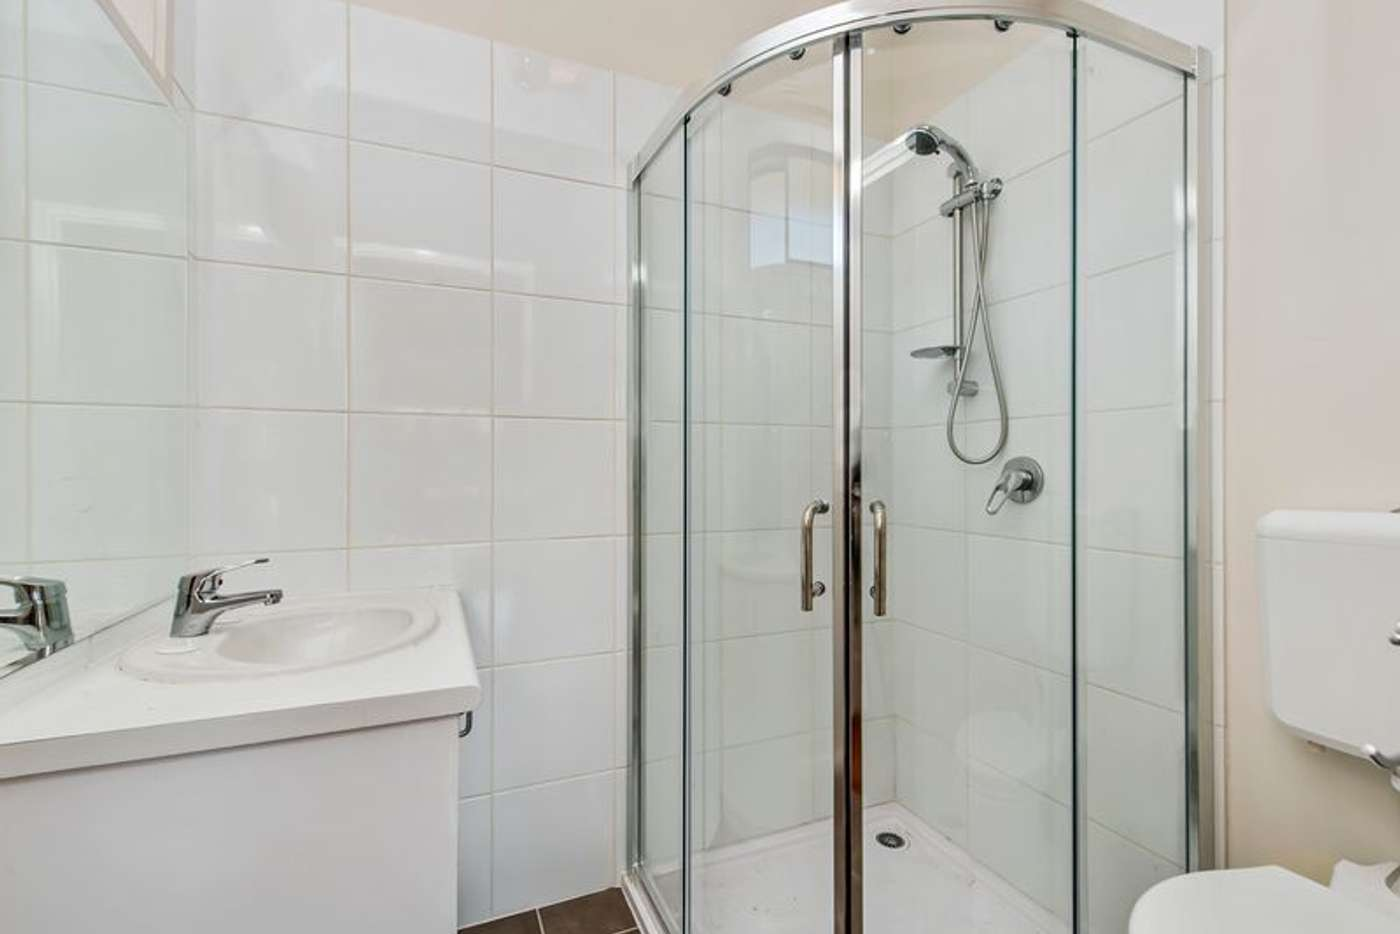 Seventh view of Homely house listing, 69 Mossfiel Drive, Hoppers Crossing VIC 3029